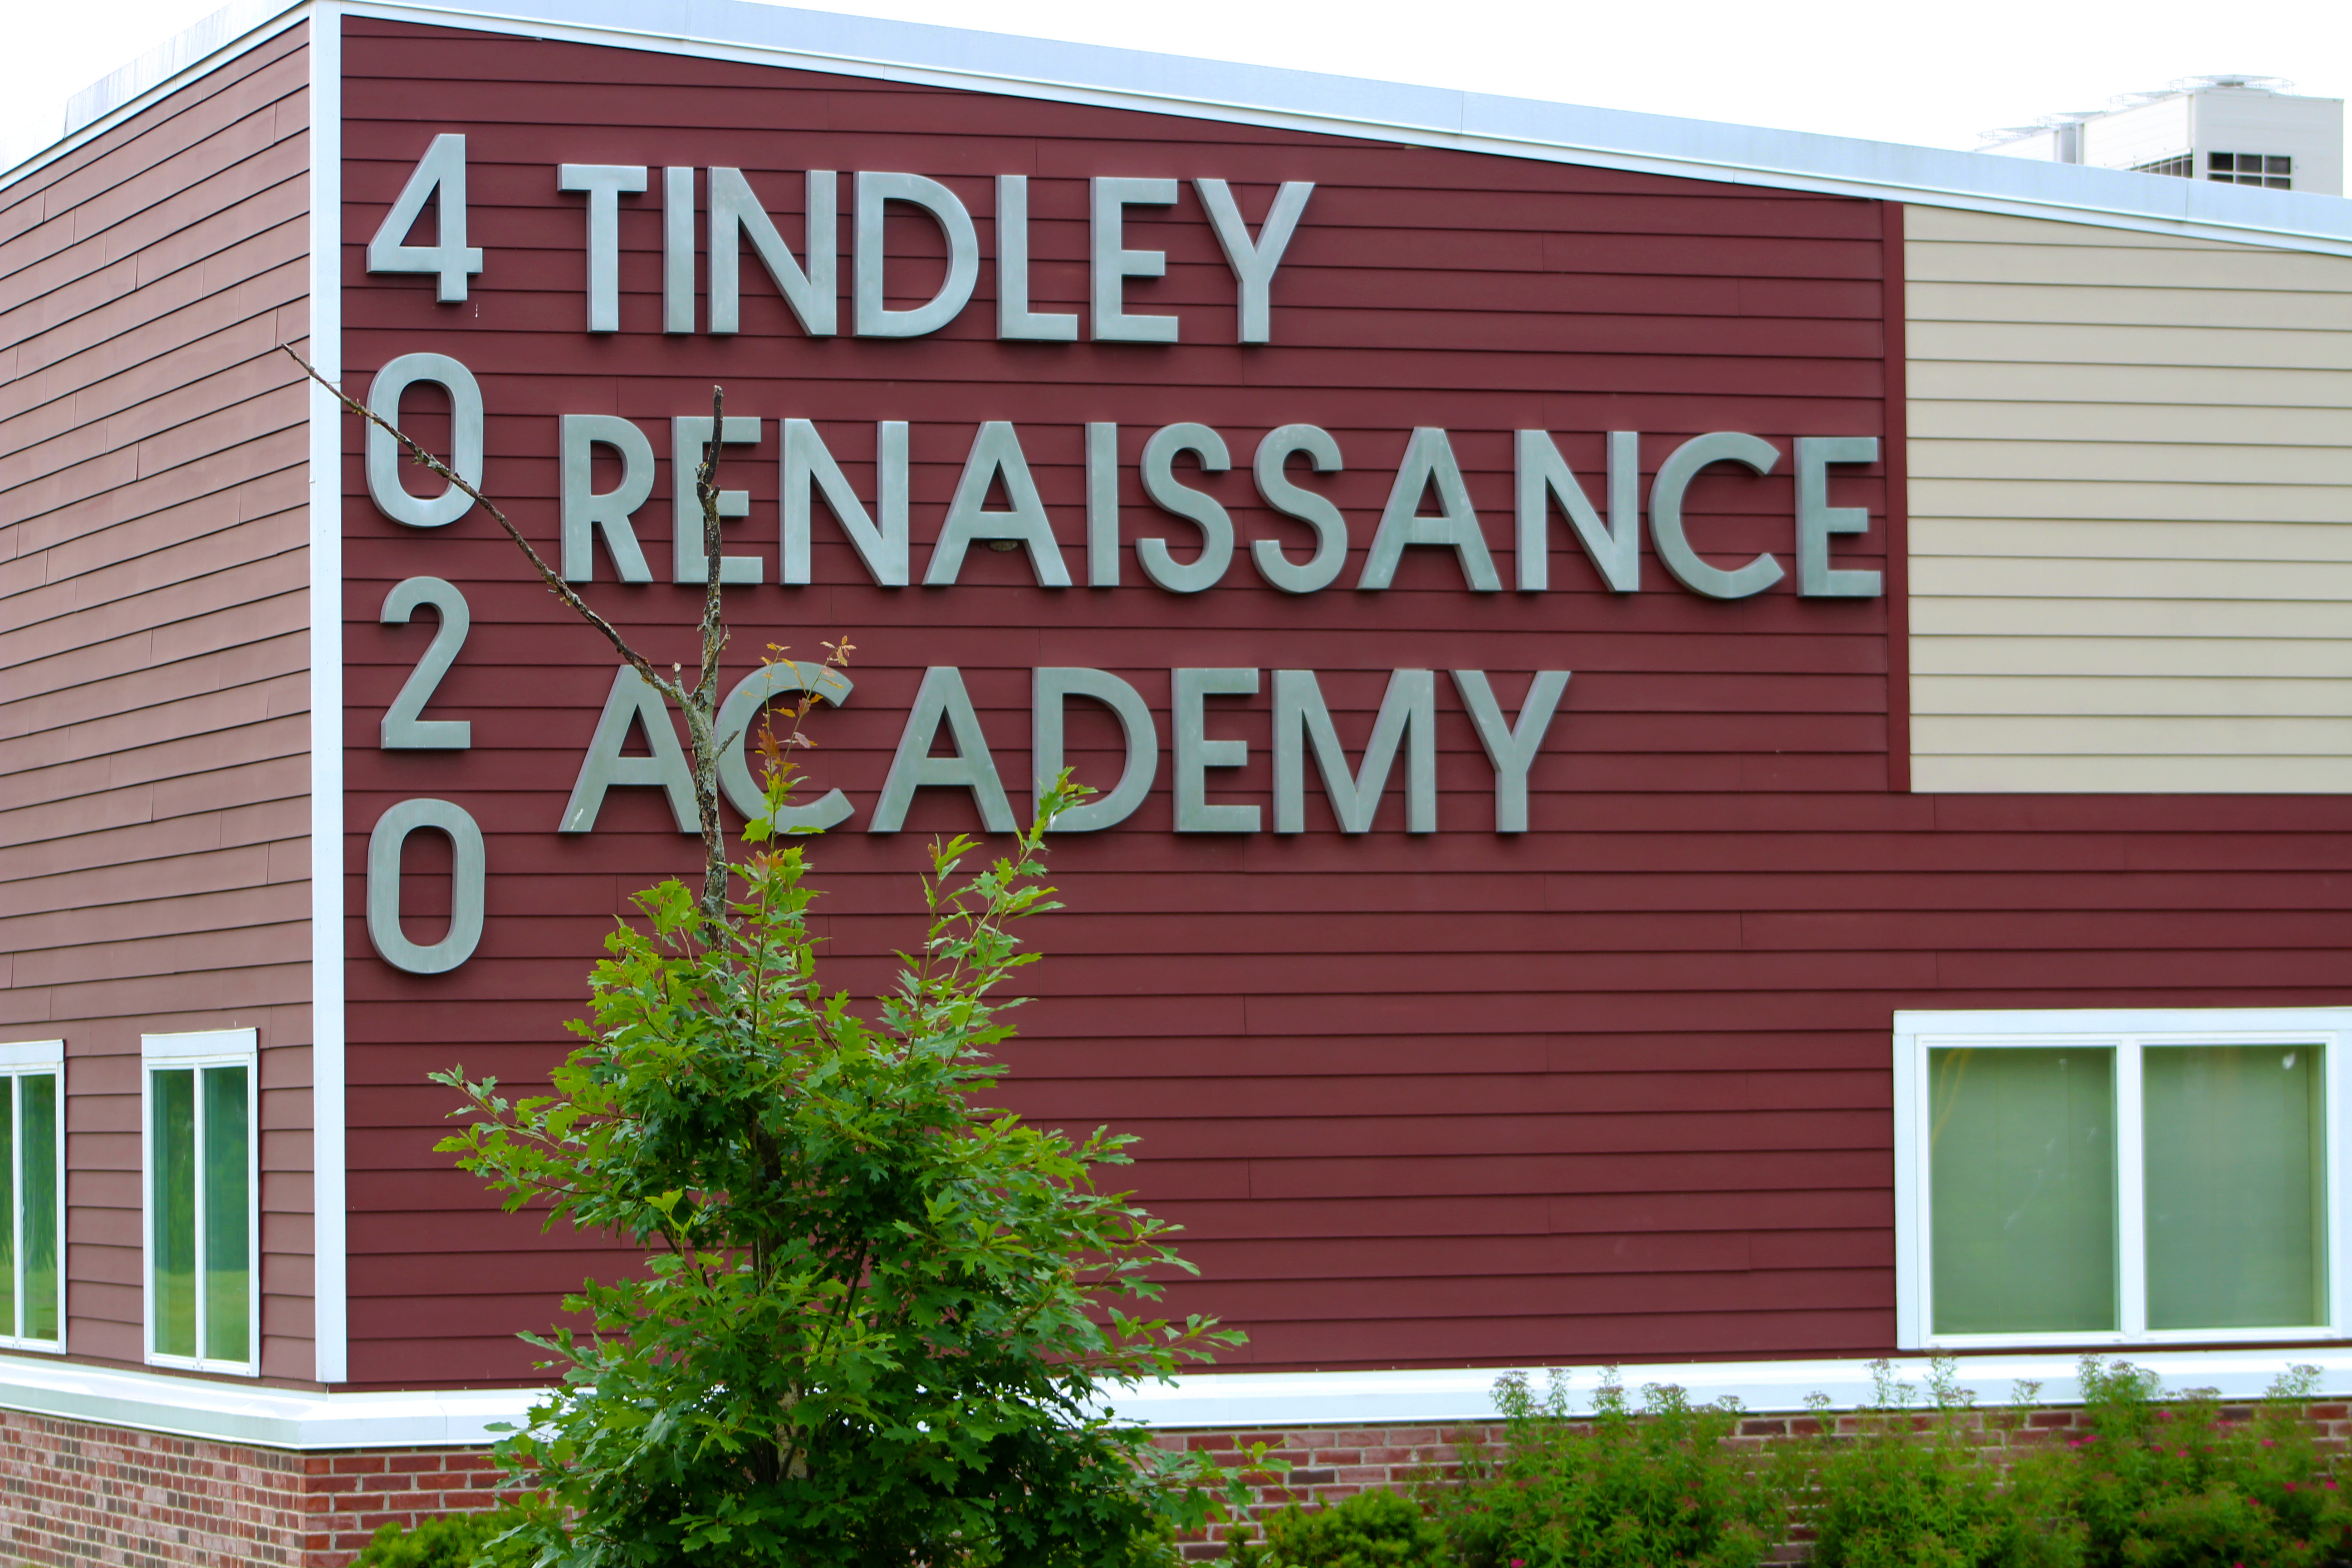 Tindley Renaissance Academy, one of three elementary schools in the Tindley Accelerated Schools Network, sits on the east side of Indianapolis.